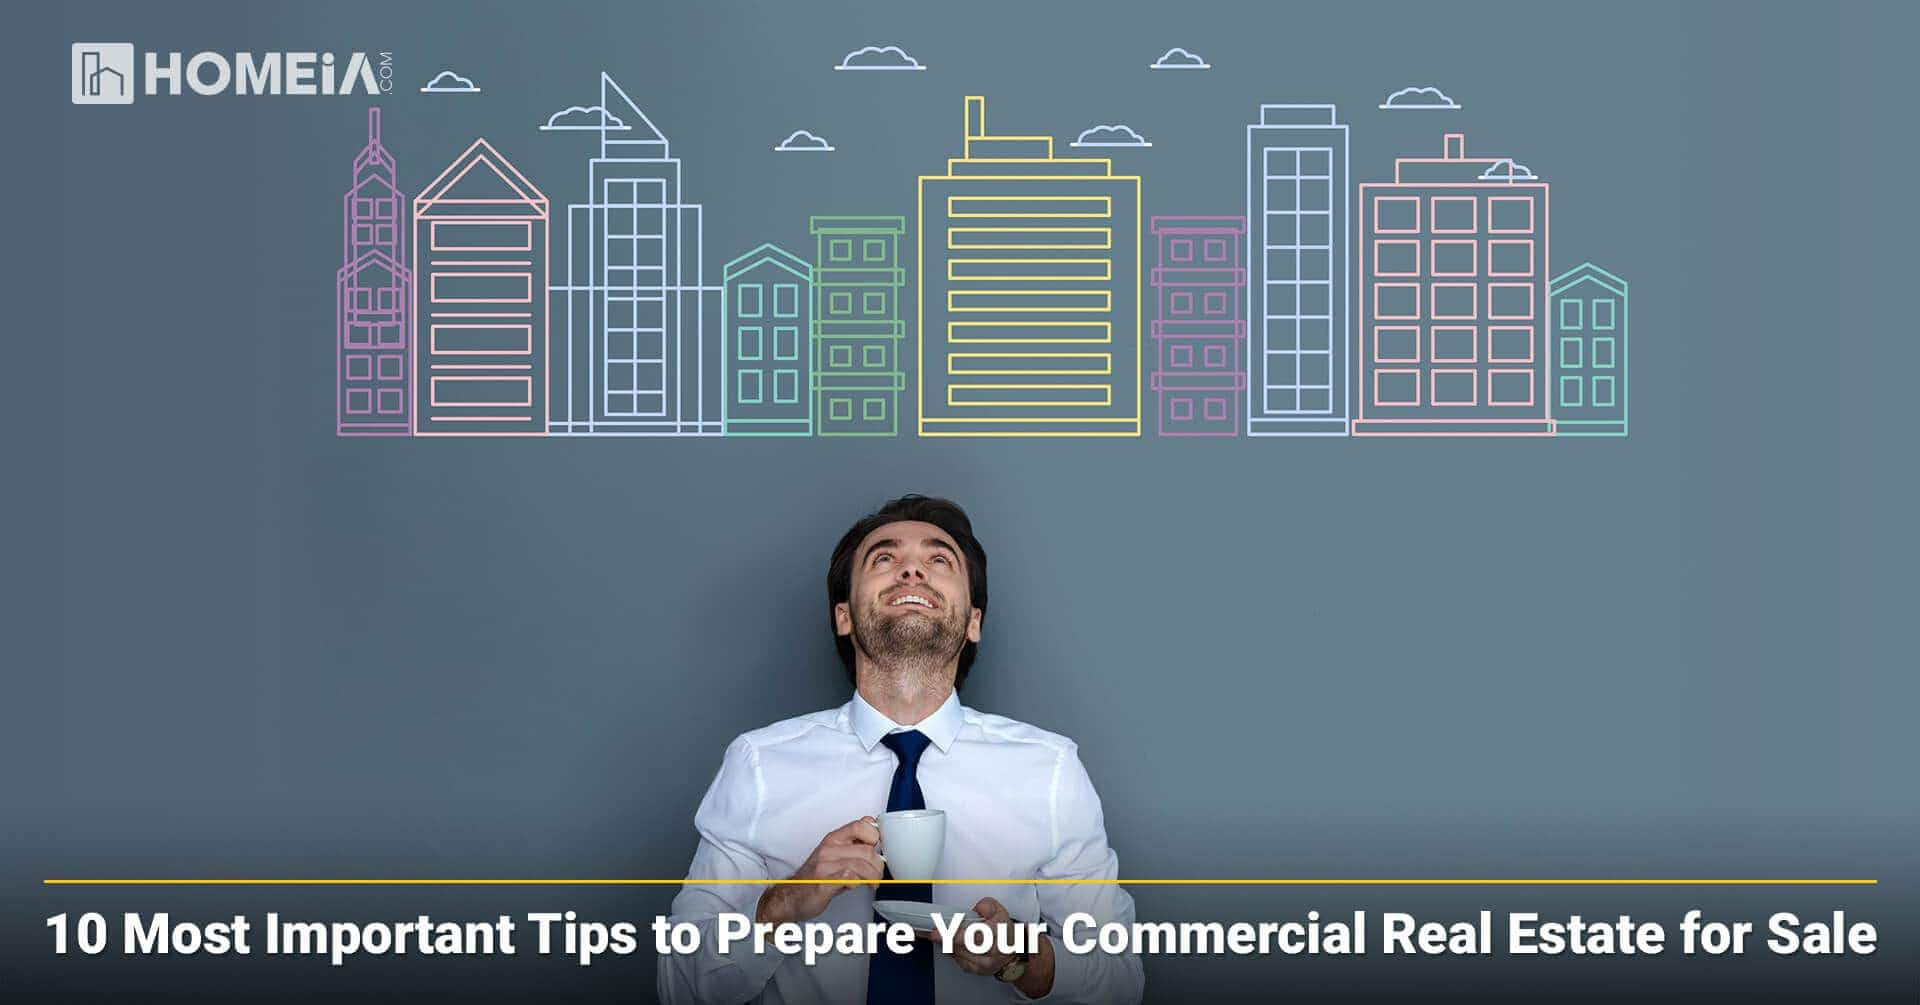 10 Most Important Tips to Prepare Your Commercial Real Estate for Sale